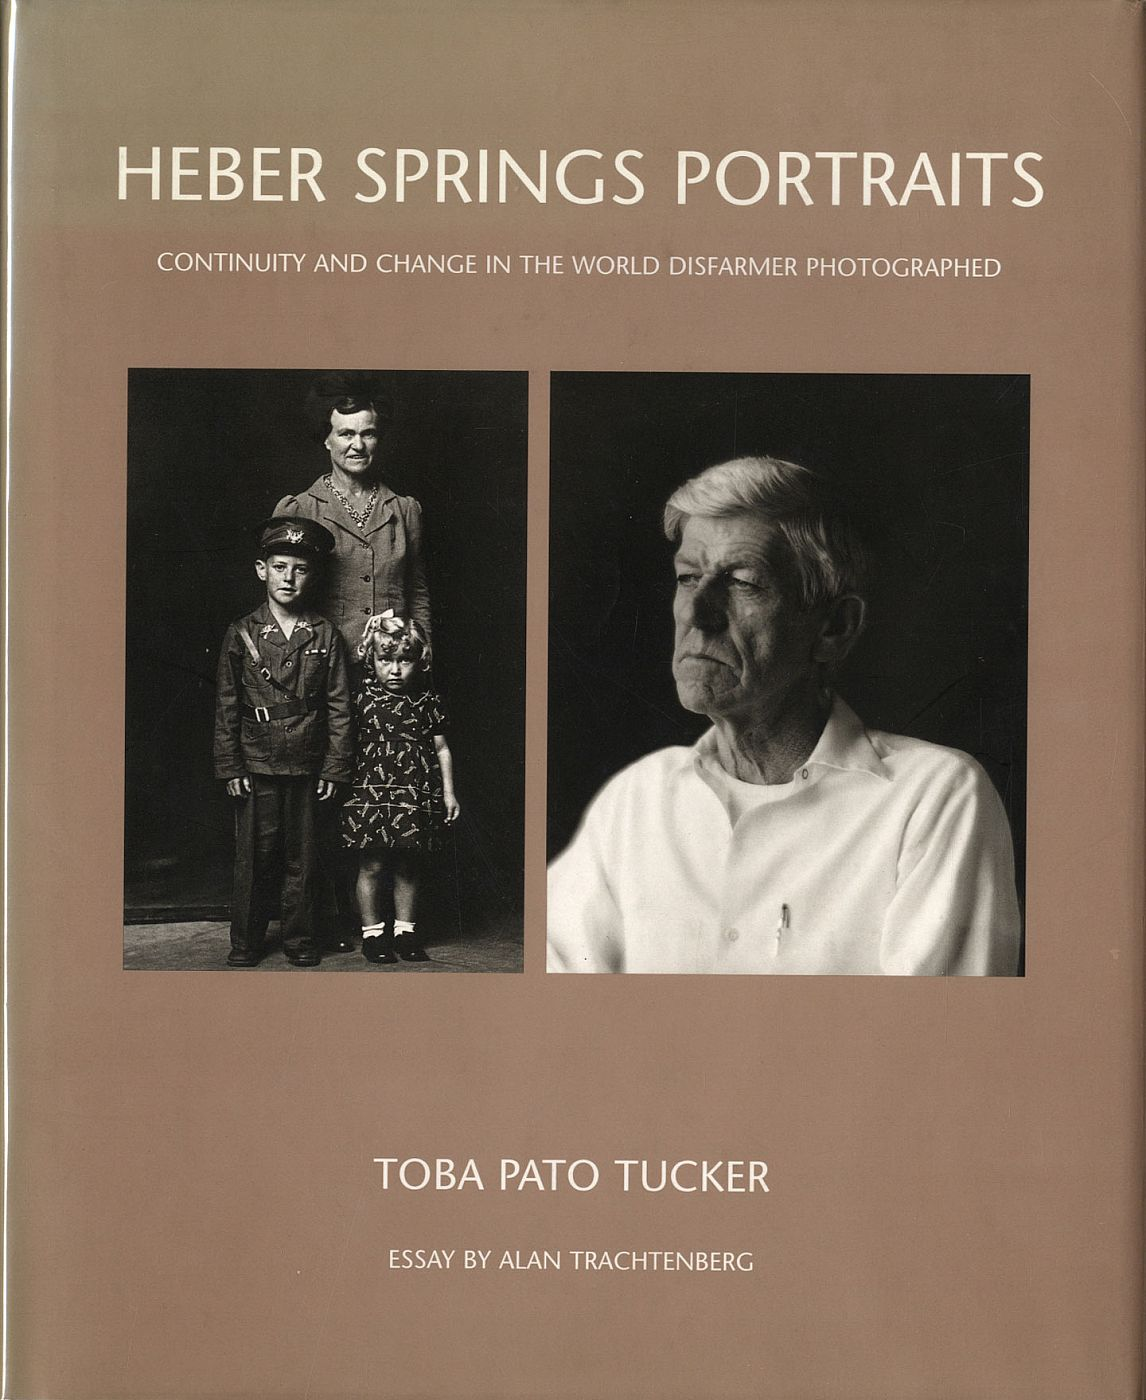 Heber Springs Portraits: Continuity and Change in the World Disfarmer Photographed [SIGNED ASSOCIATION COPY]